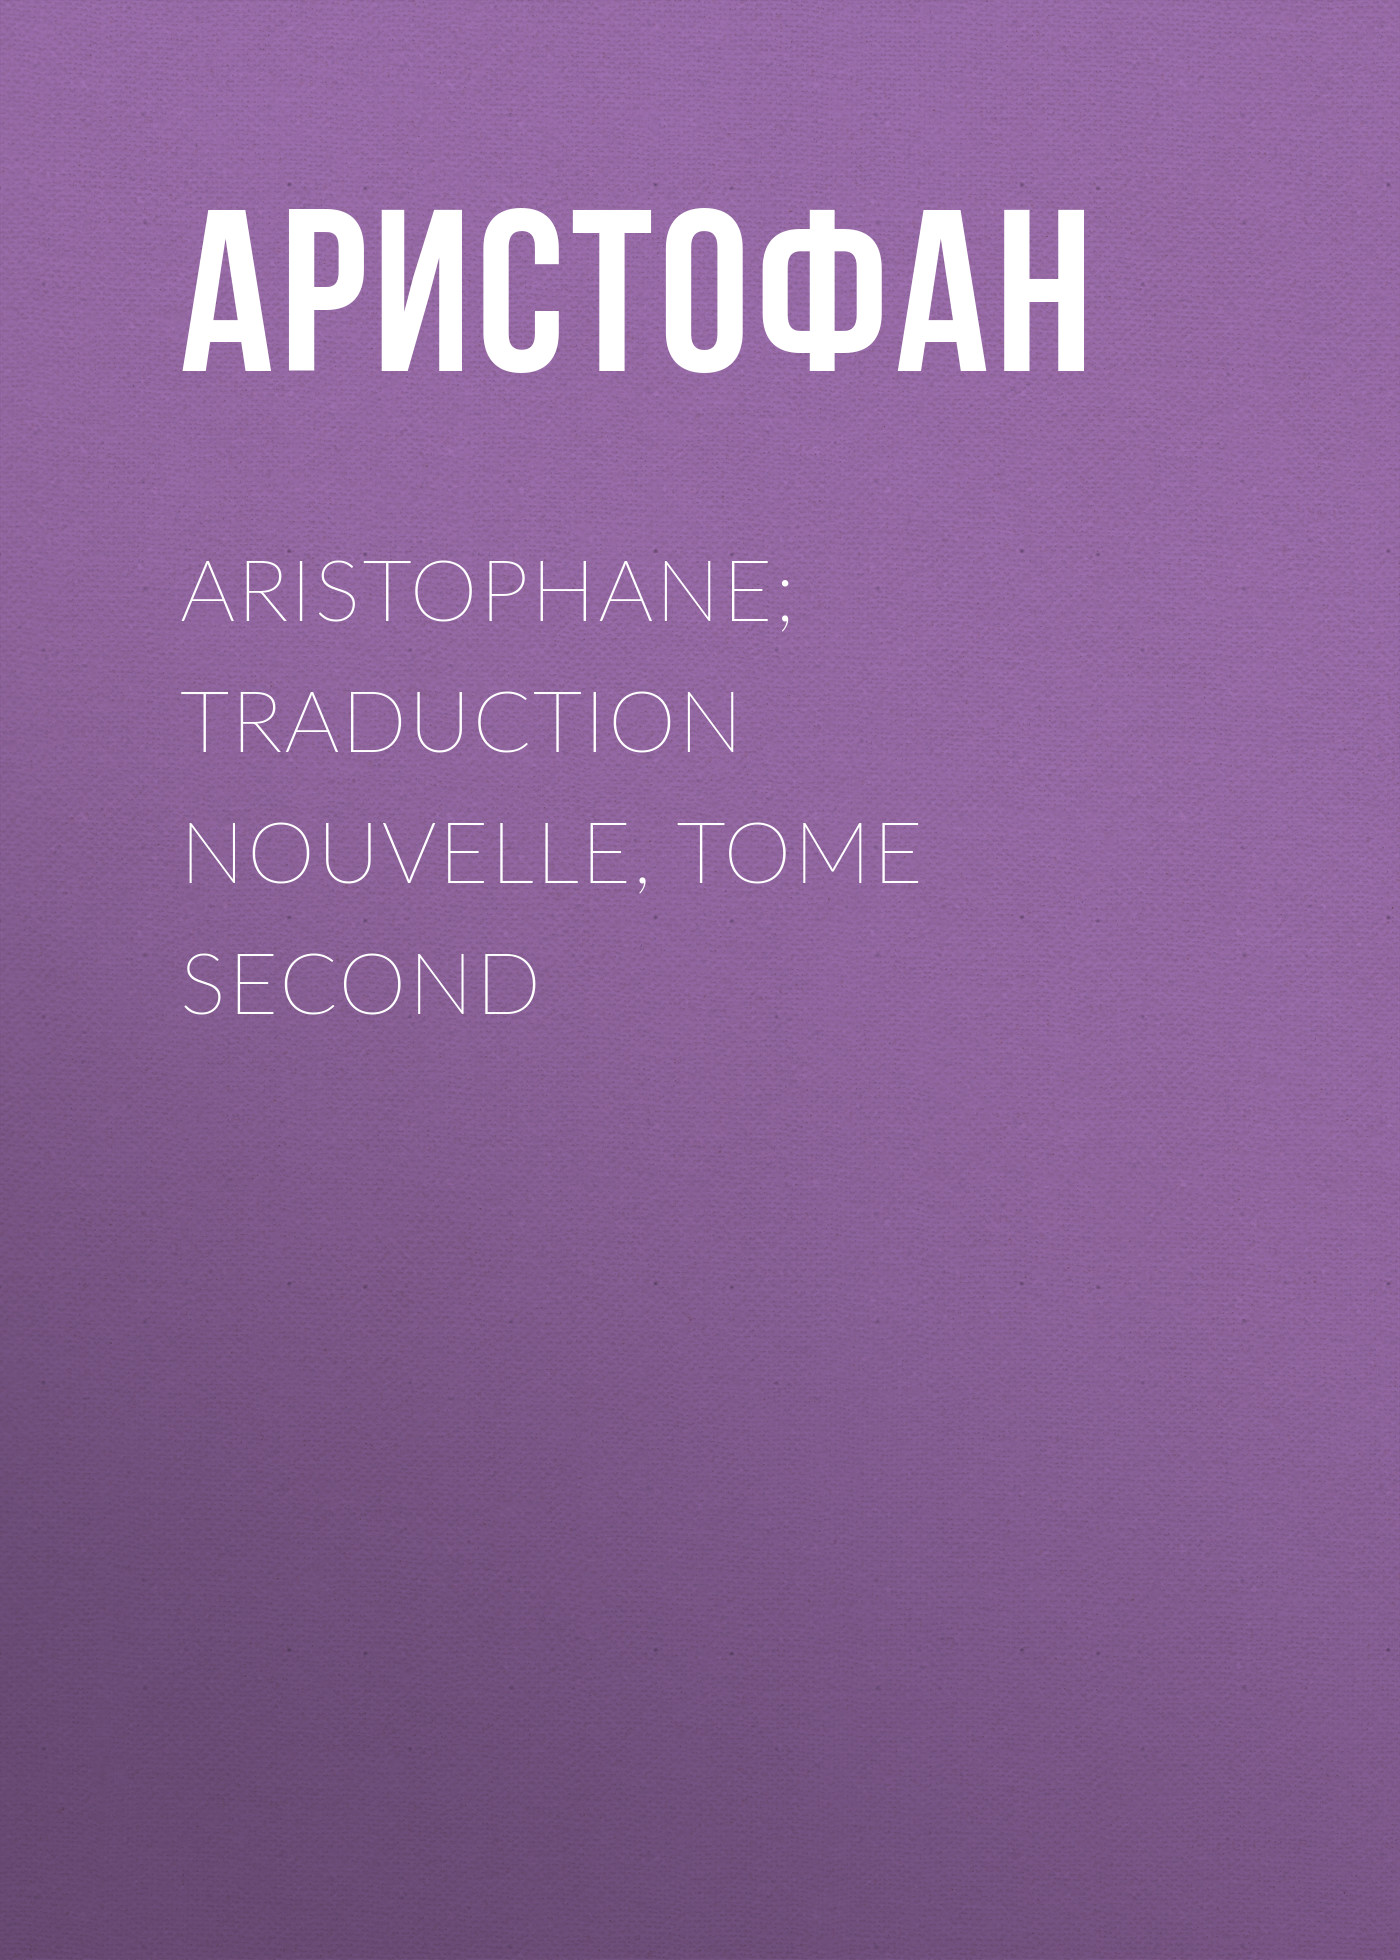 aristophane traduction nouvelle tome second